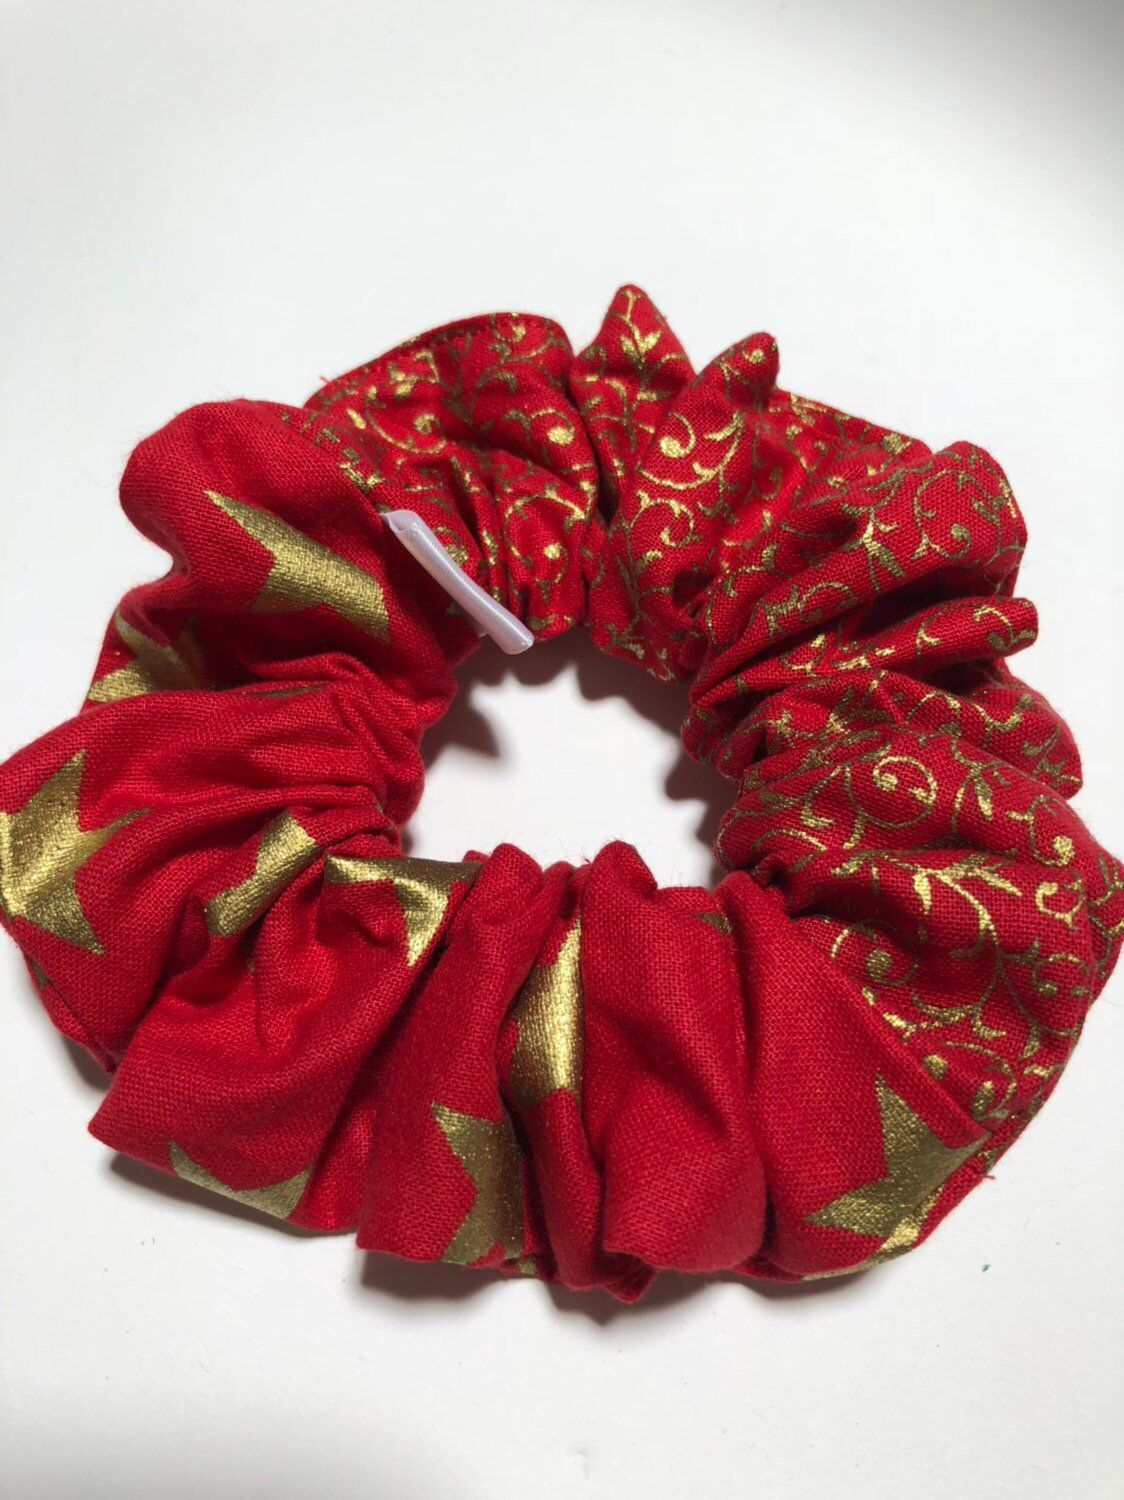 Christmas Scrunchy To Add A Festive Touc Accessories - Hair Beauty